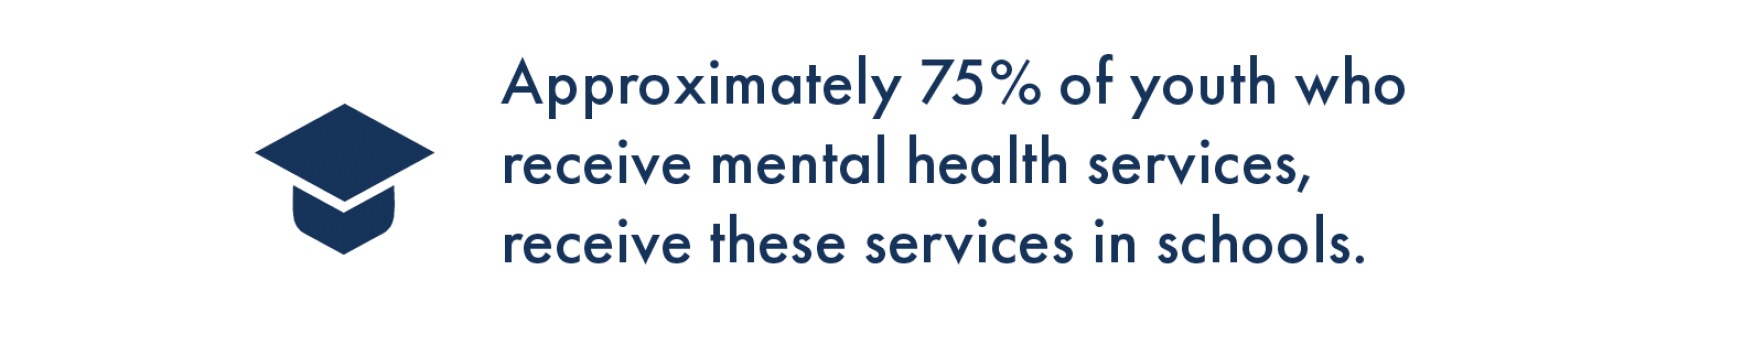 Approximately 75% of youth who receive mental health services, receive these services in schools.